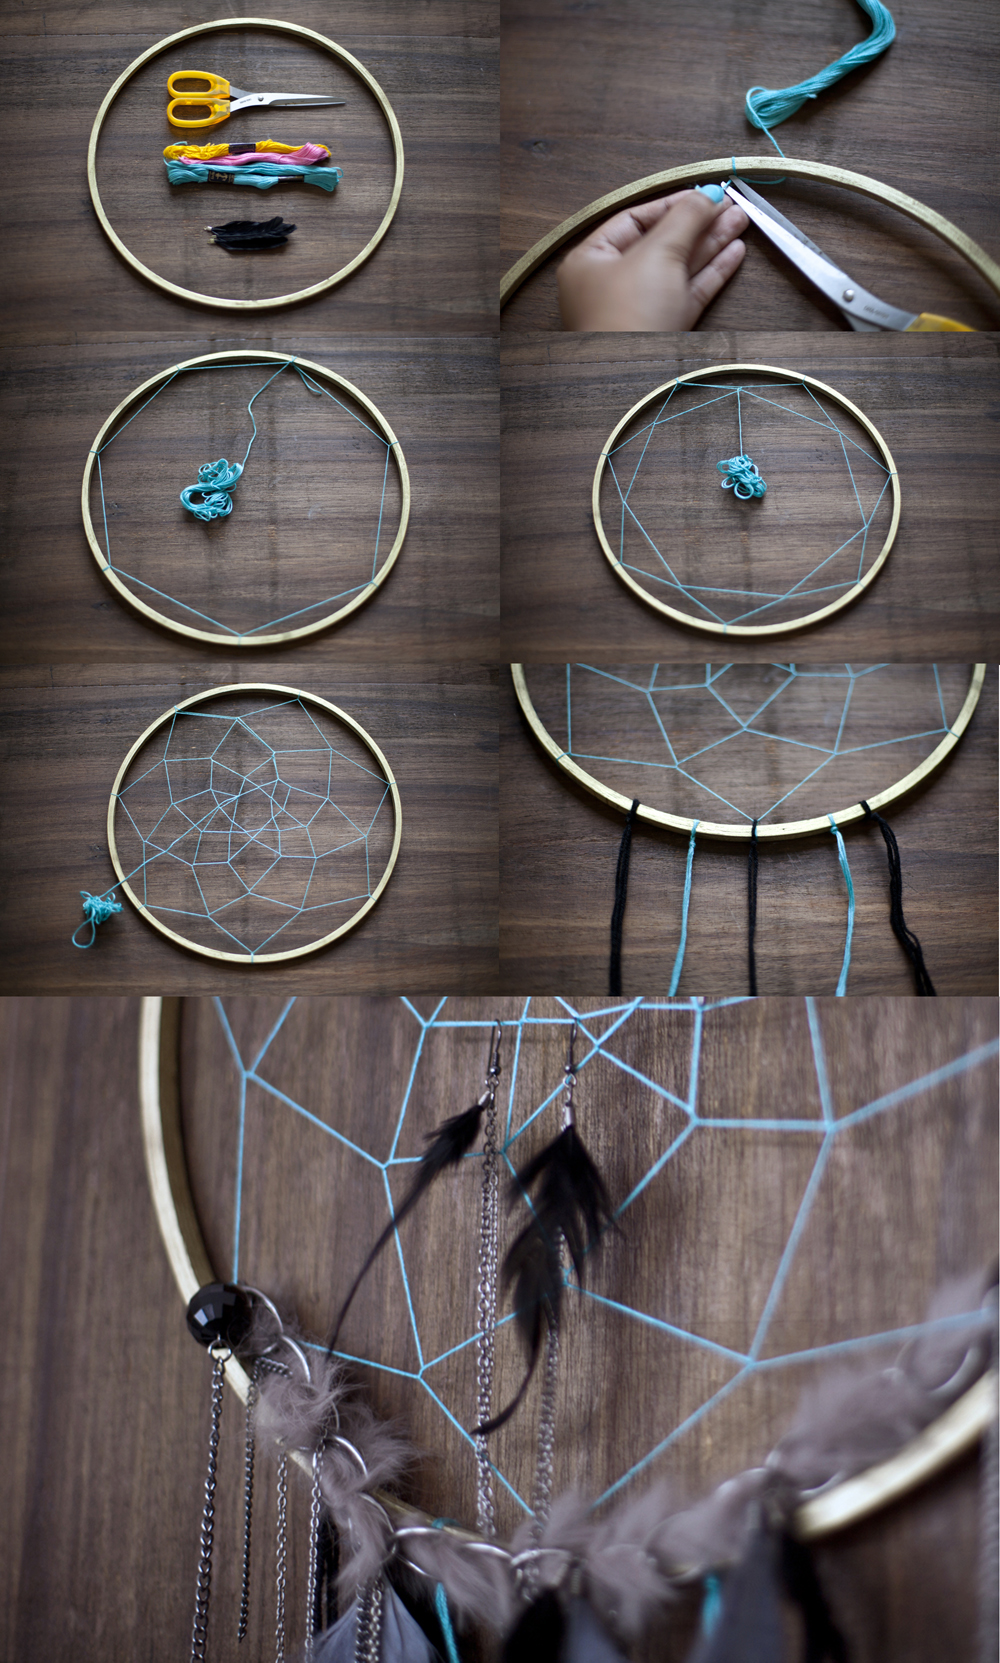 materials needed for making a dream catcher, scissors and thread in different colors, small wooden hoop and feathers, art and craft ideas, photos showing how to make a dream catcher